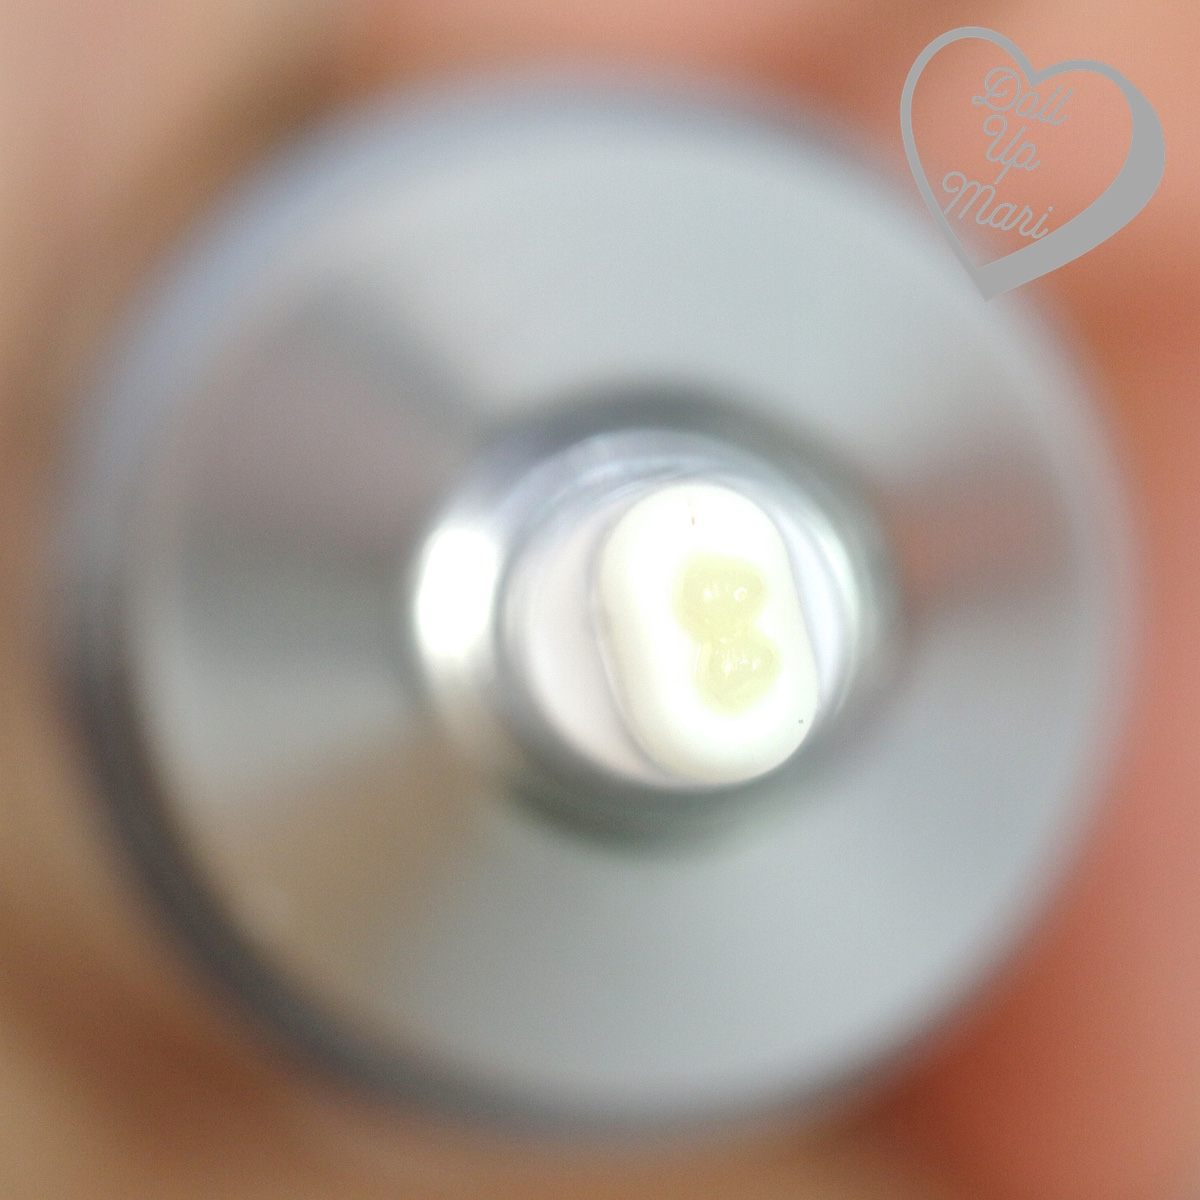 dispensing from tip of Avène PhysioLift Precision Wrinkle Filler